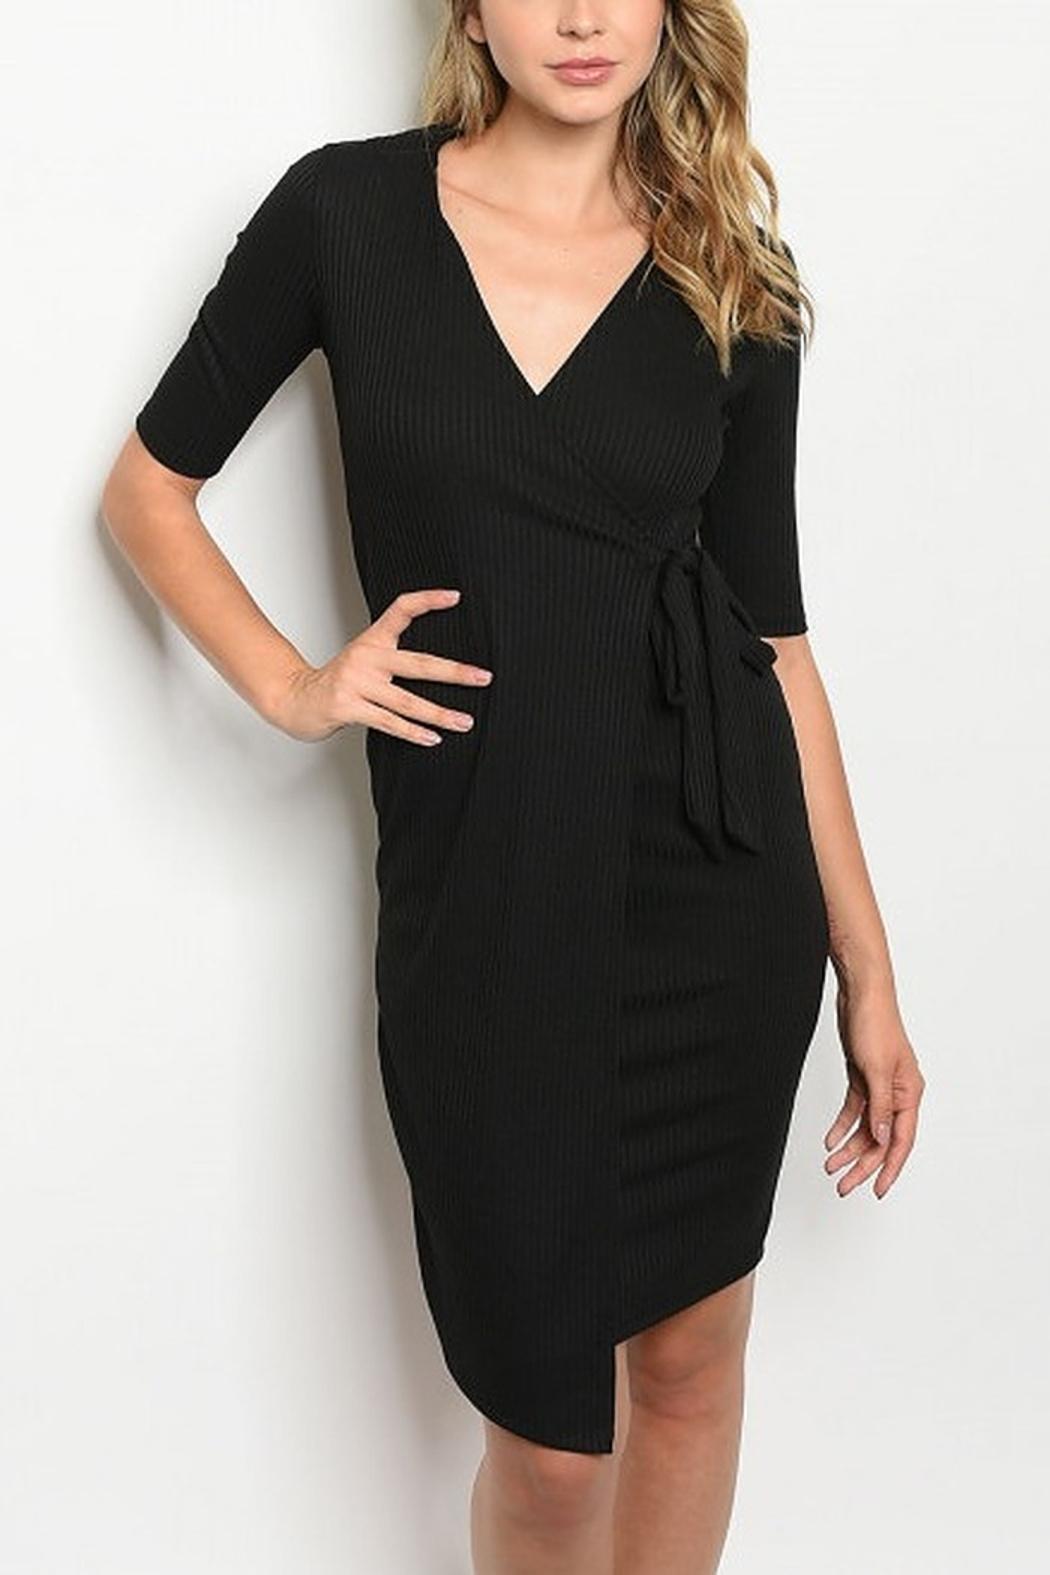 Lyn -Maree's Faux Wrap Sweater Dress - Front Cropped Image